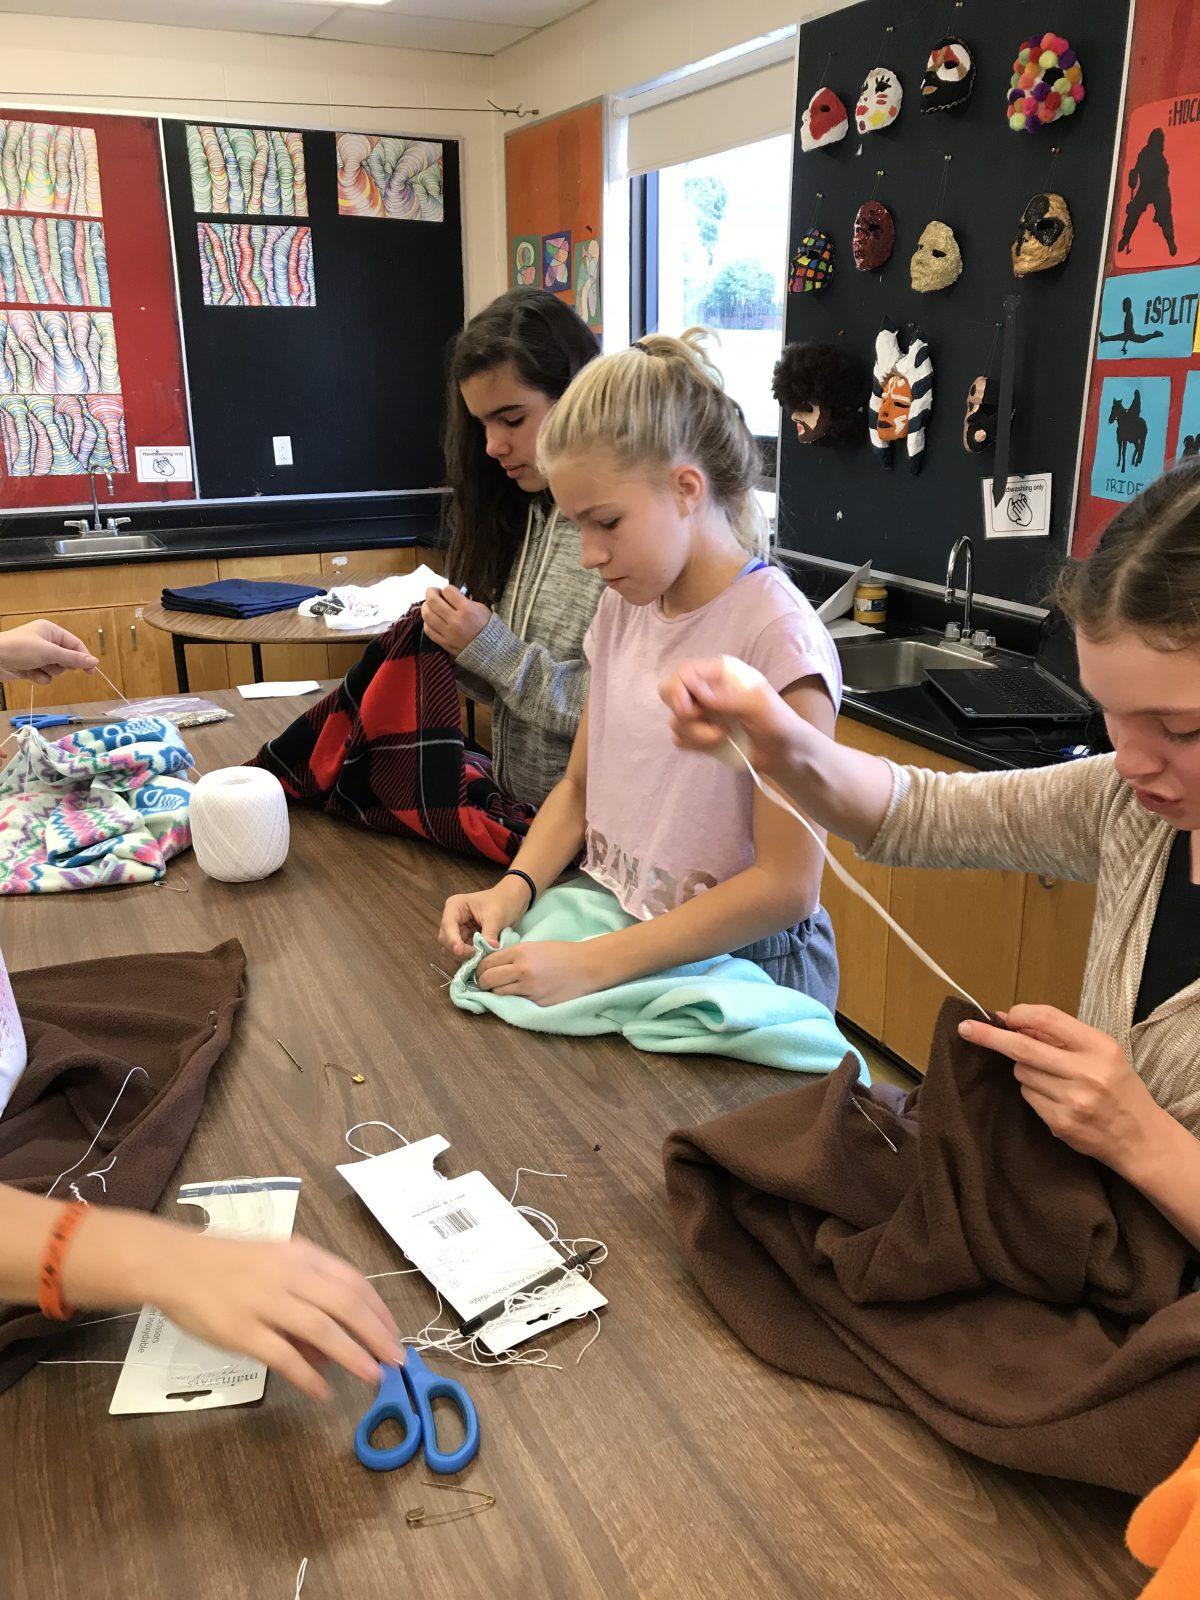 St. Paul students sew traditional blanket coats